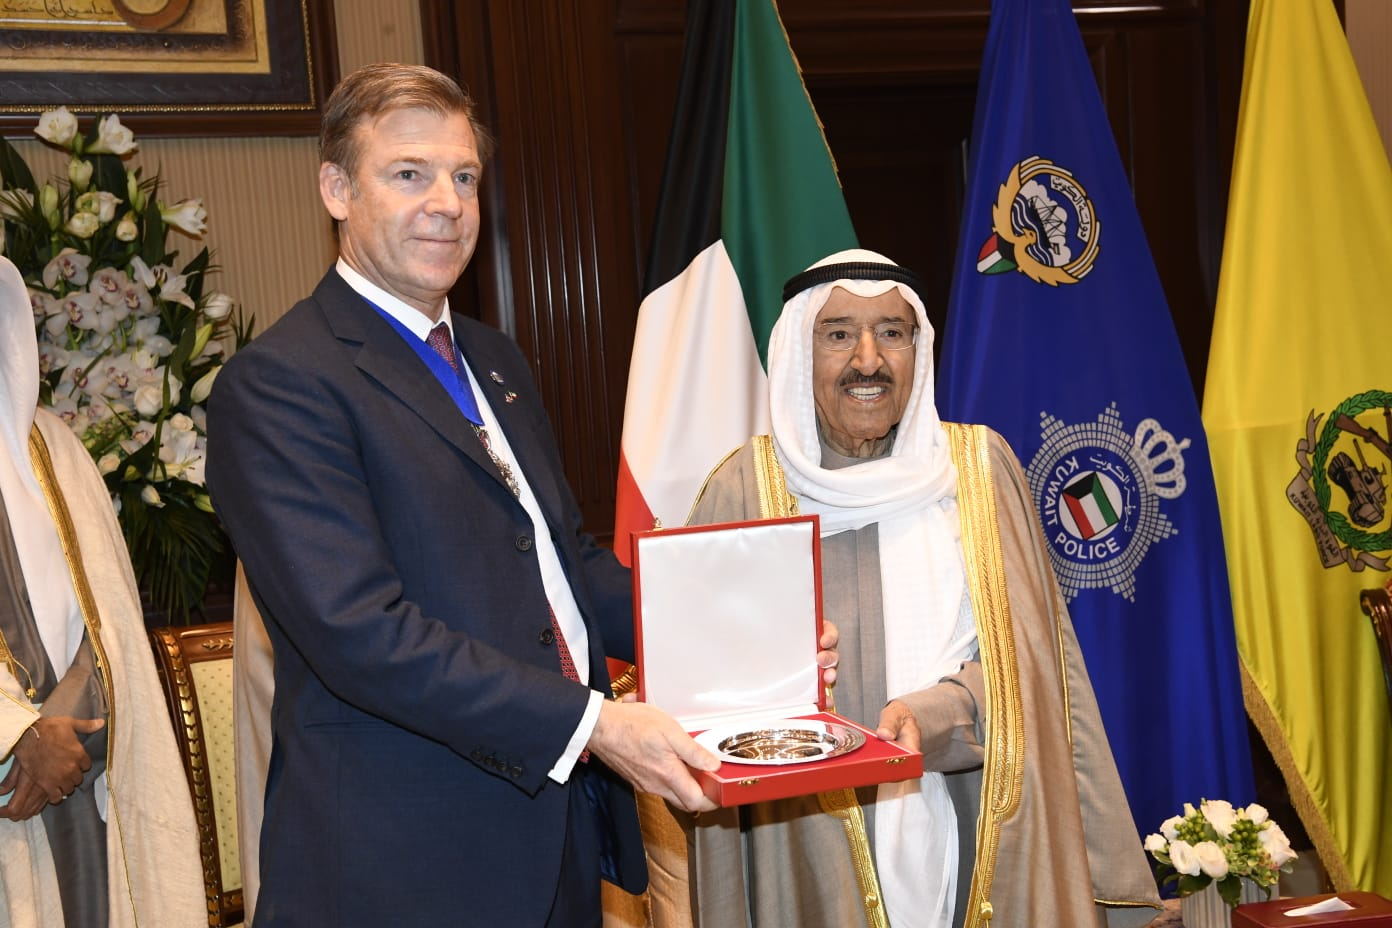 The Lord Mayor of London, William Russell, meets Kuwait's then head of state, Emir Sabah al-Sabah, February 2020, during a visit to the Gulf dictatorship. (Photo: Lord Mayor / Twitter)